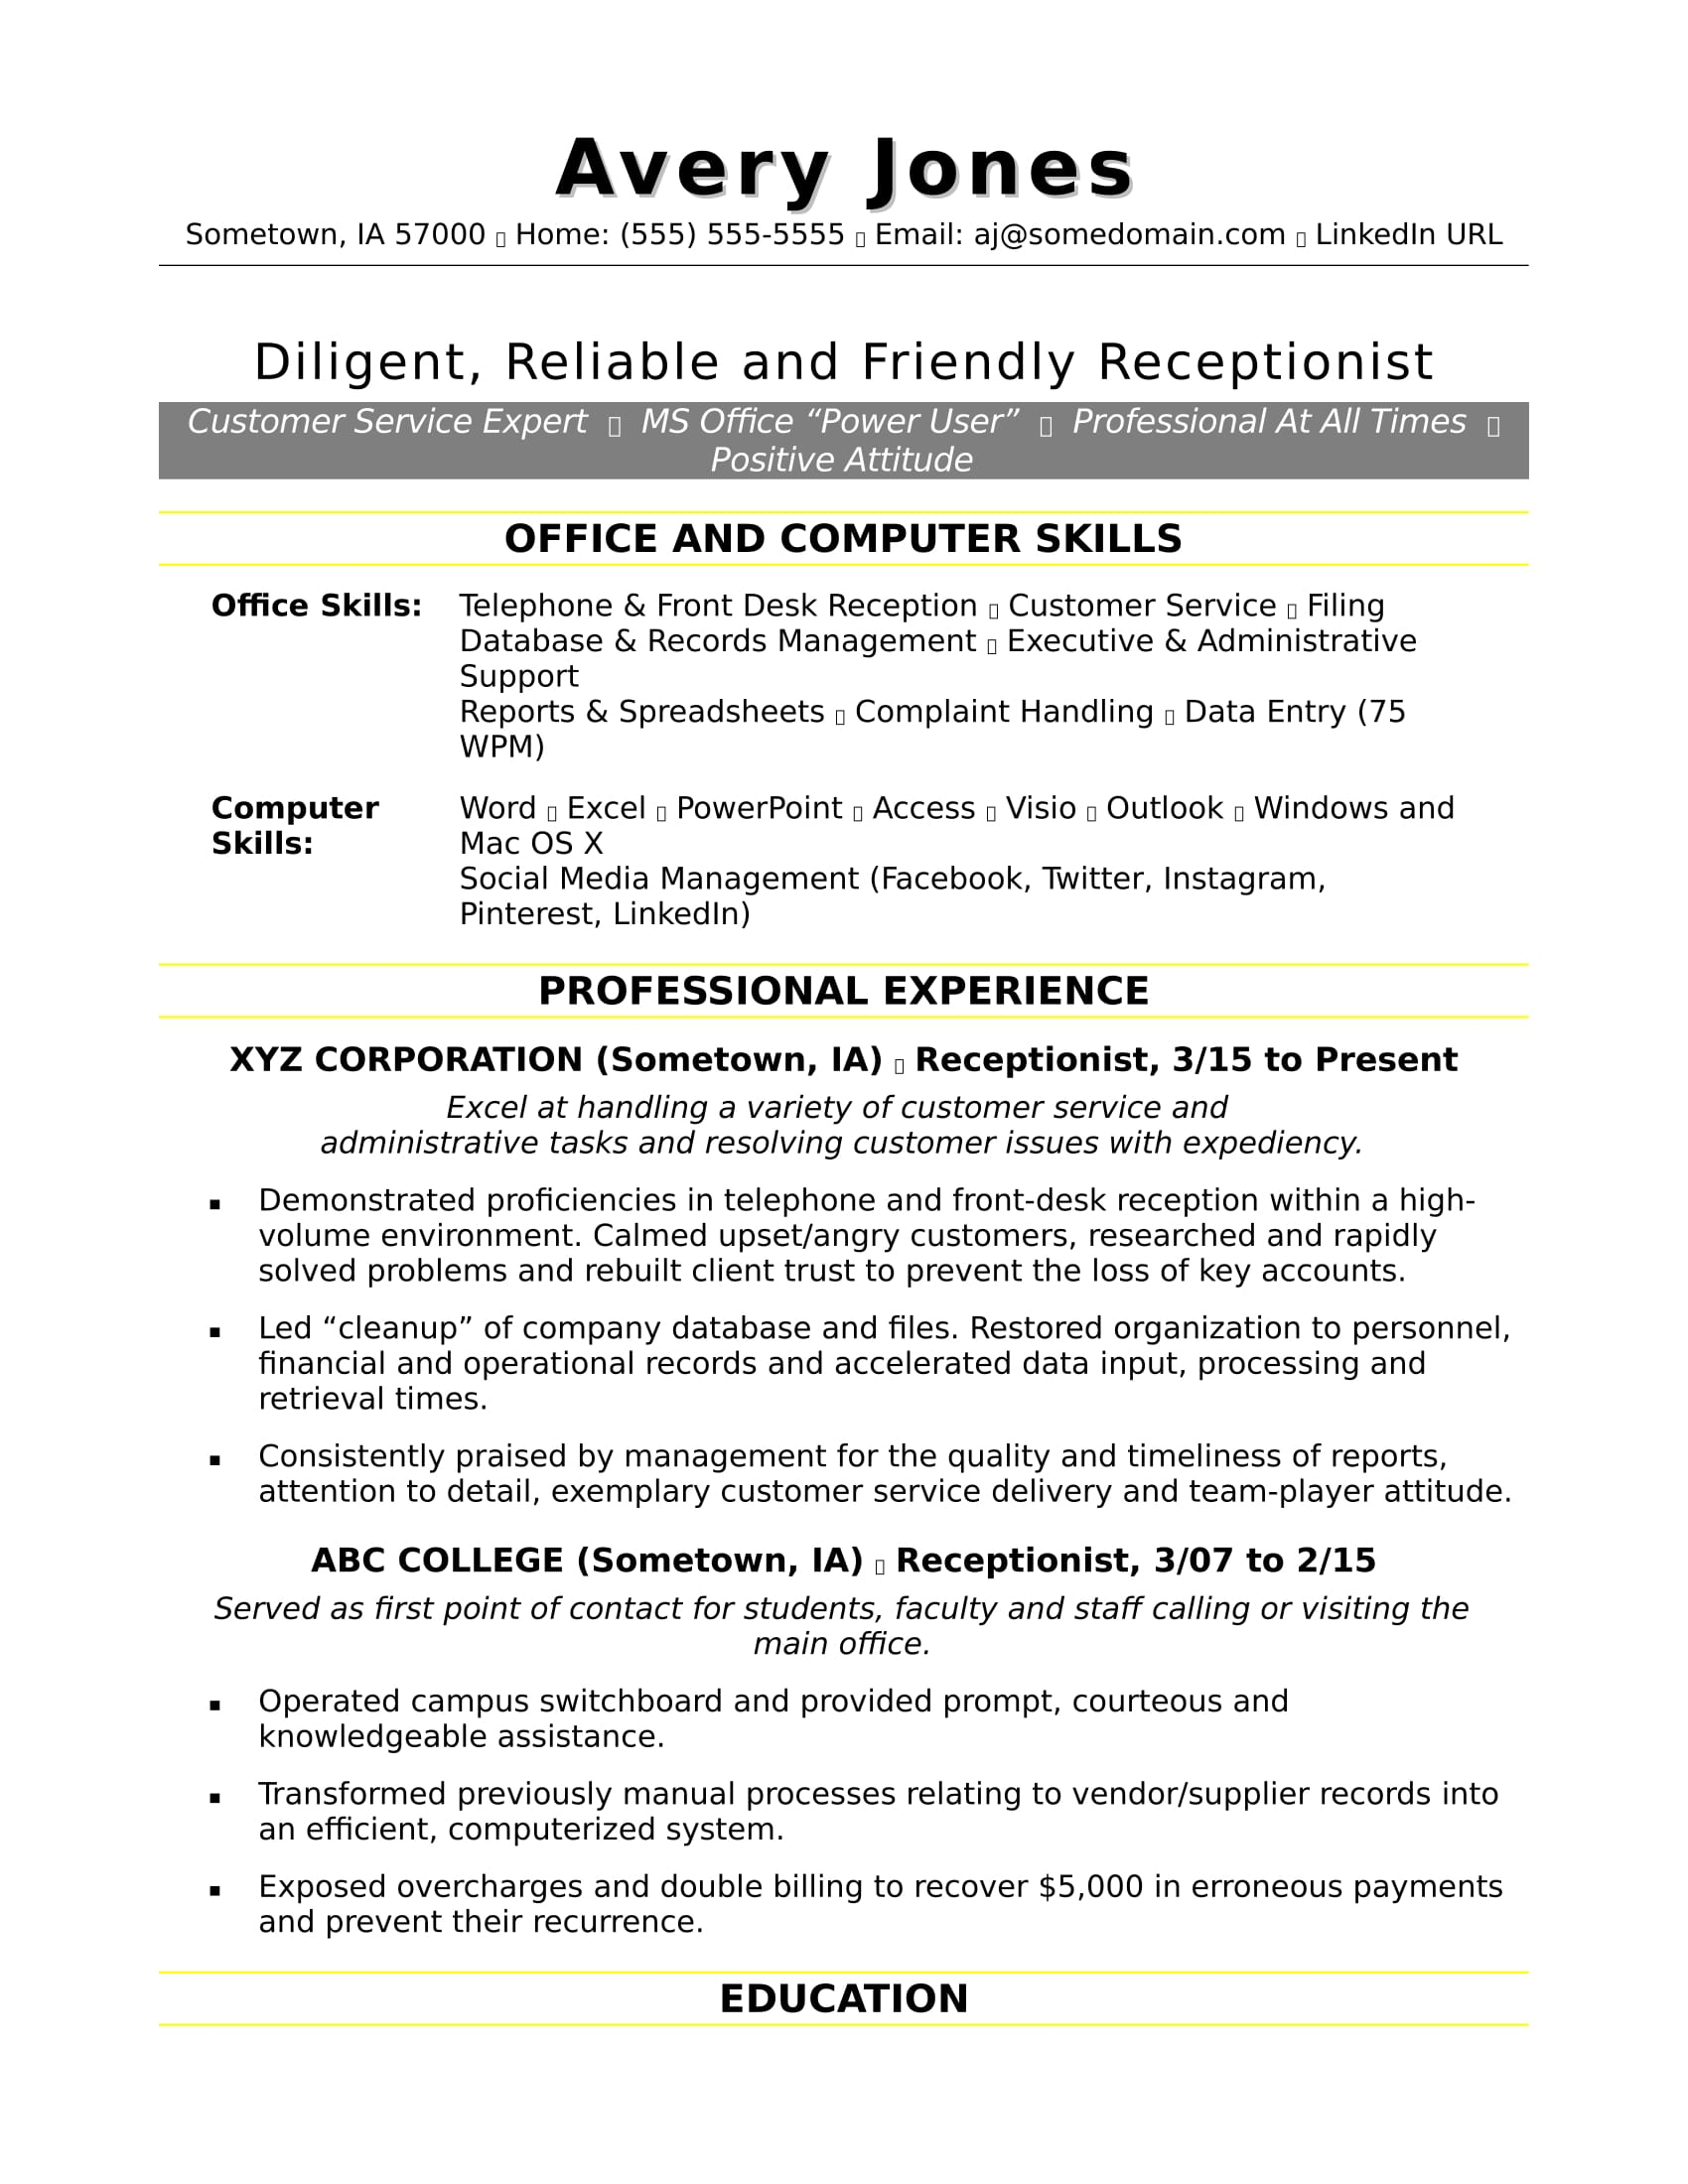 sample resume for a receptionist - Sample Resumes For Receptionist Admin Positions